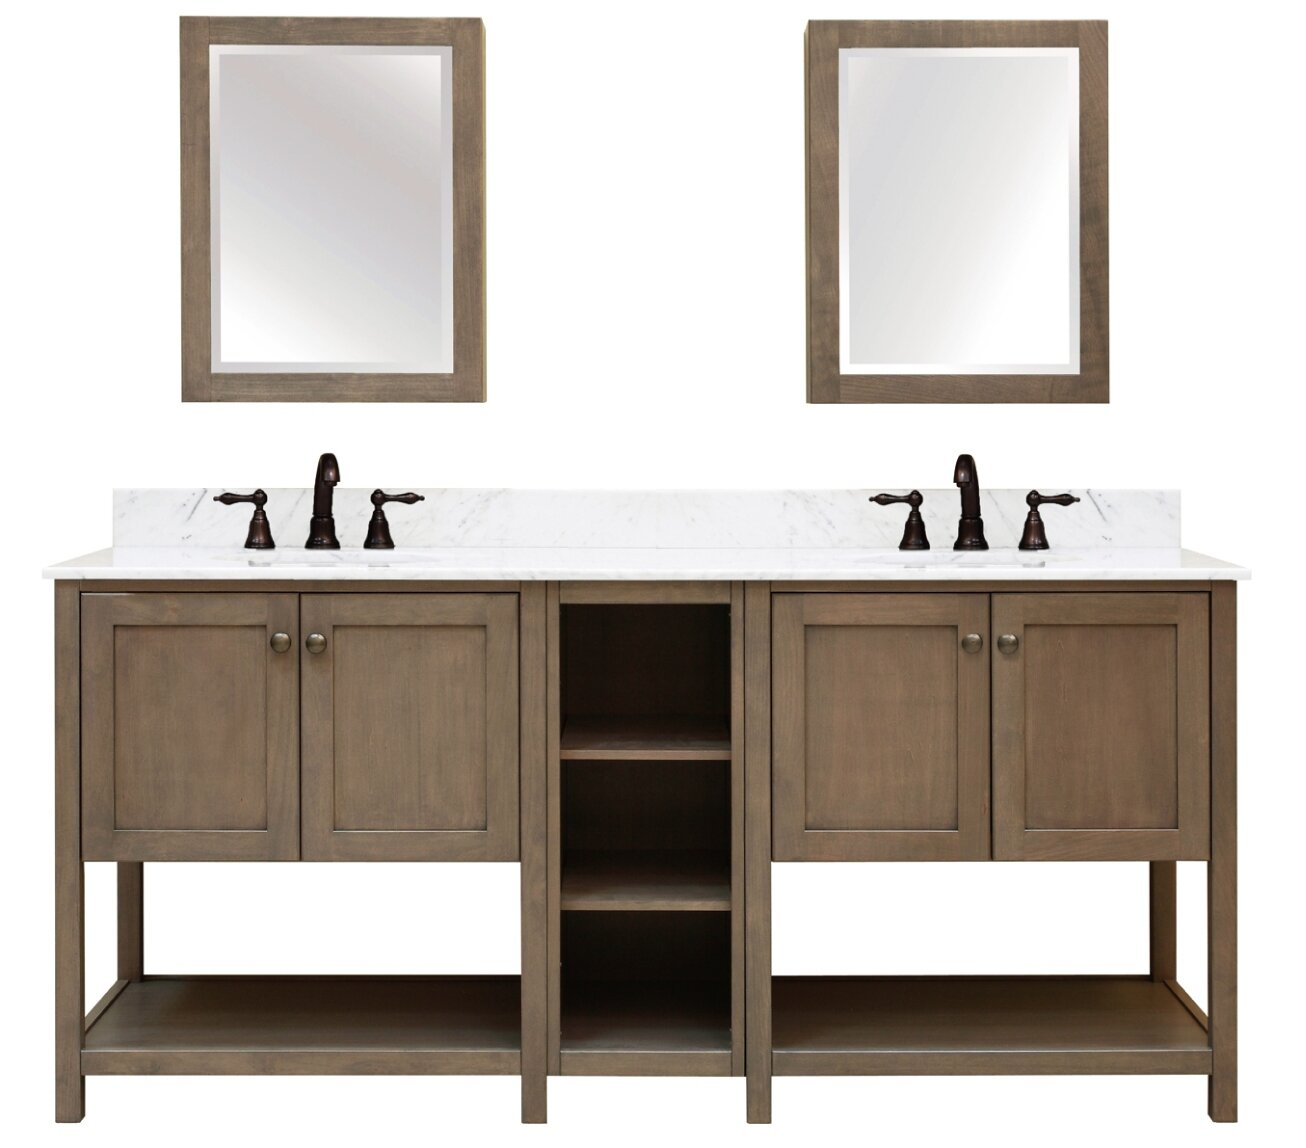 Bathroom Vanities Without Tops Youll Love Double Sink Plumbing Diagram Search Results Aiden Bath 2 Shelf Modular Component For Vanity Base